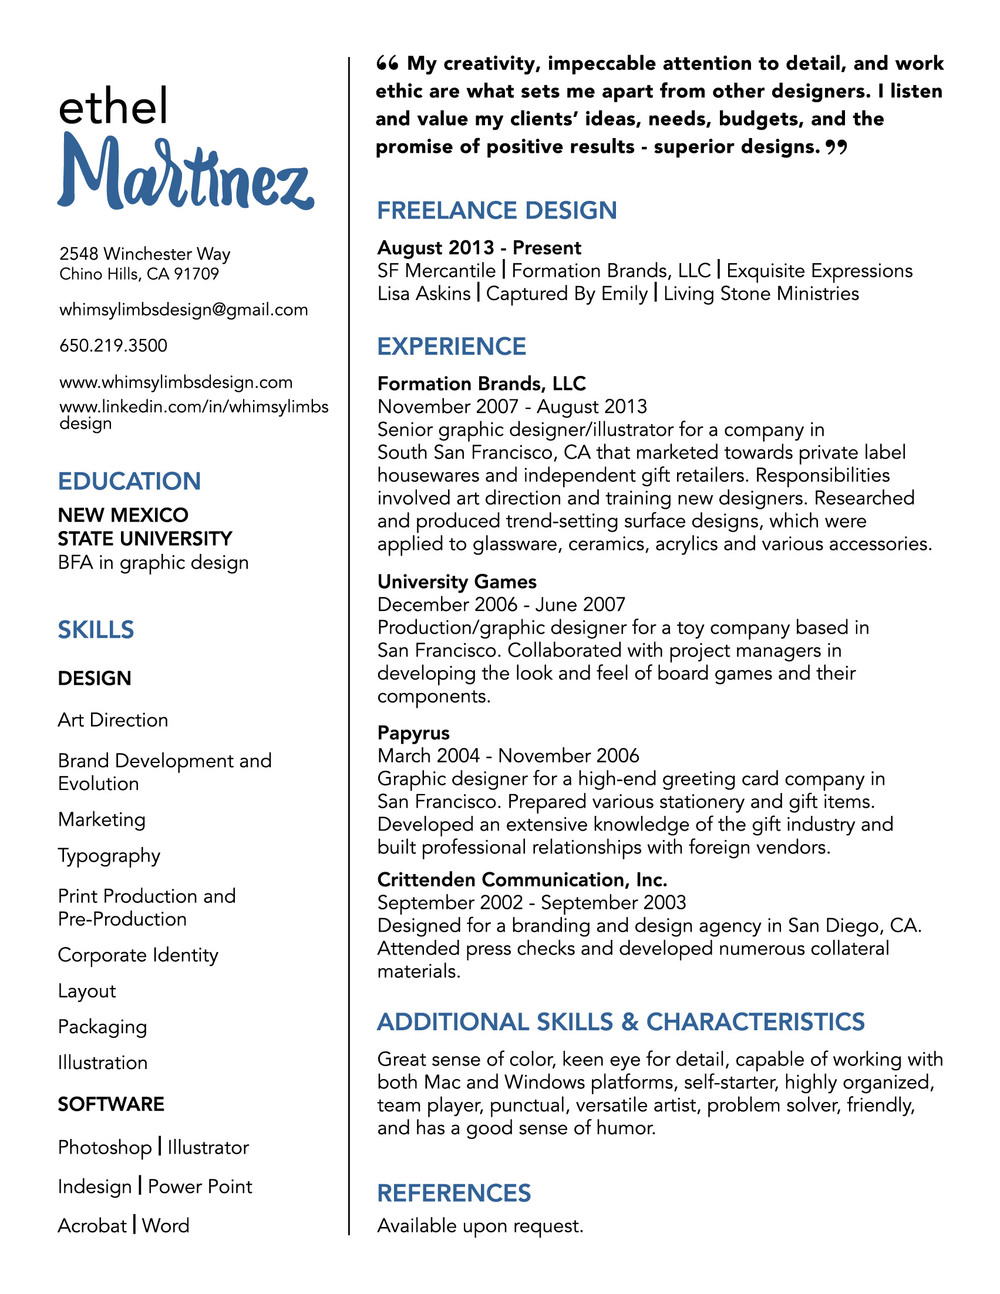 EthelMartinez-Resume2016.jpg